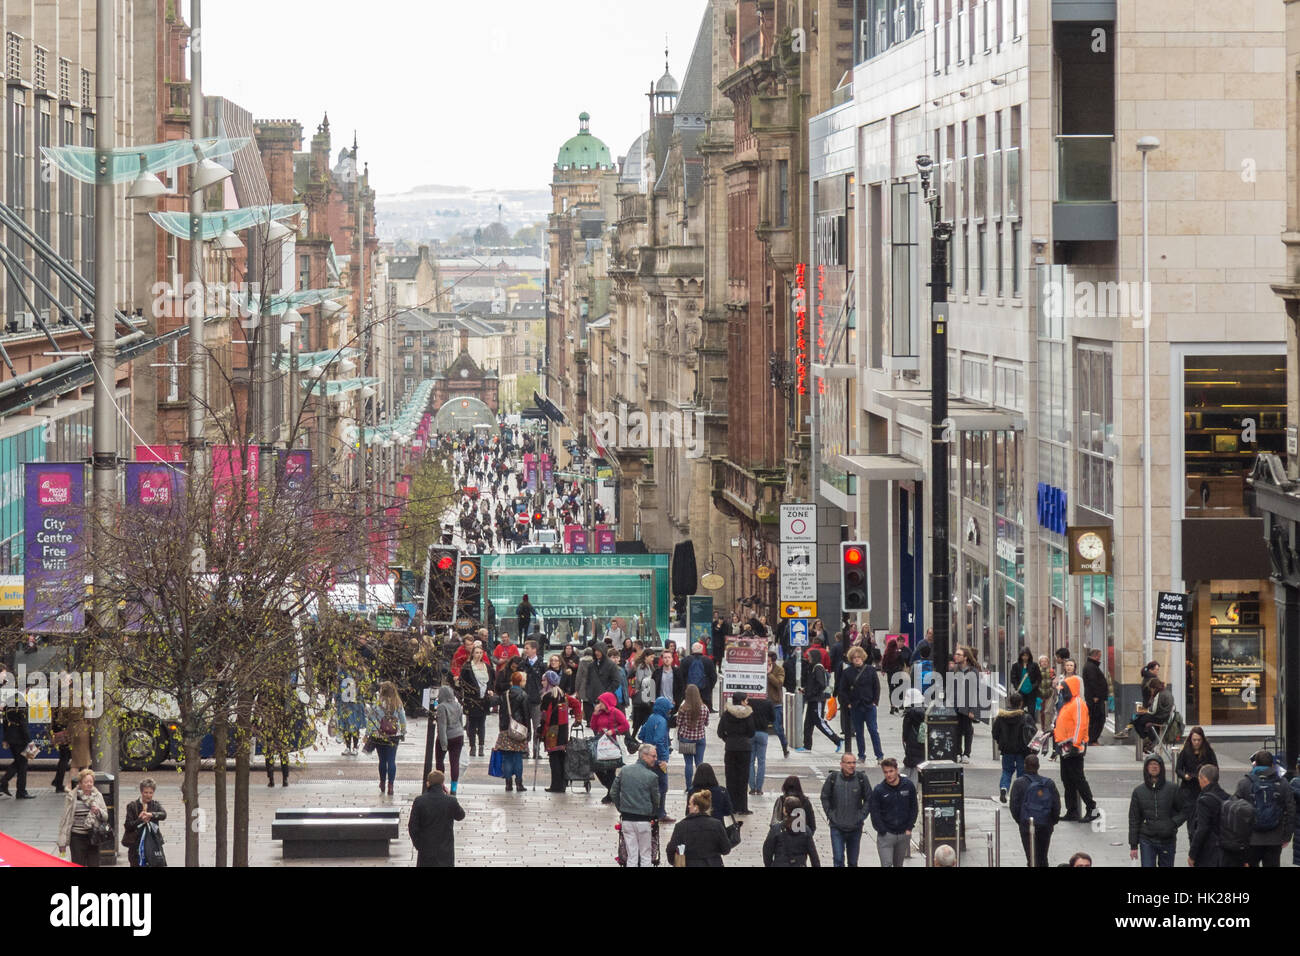 Buchanan Street, Glasgow, Scotland, UK - Stock Image